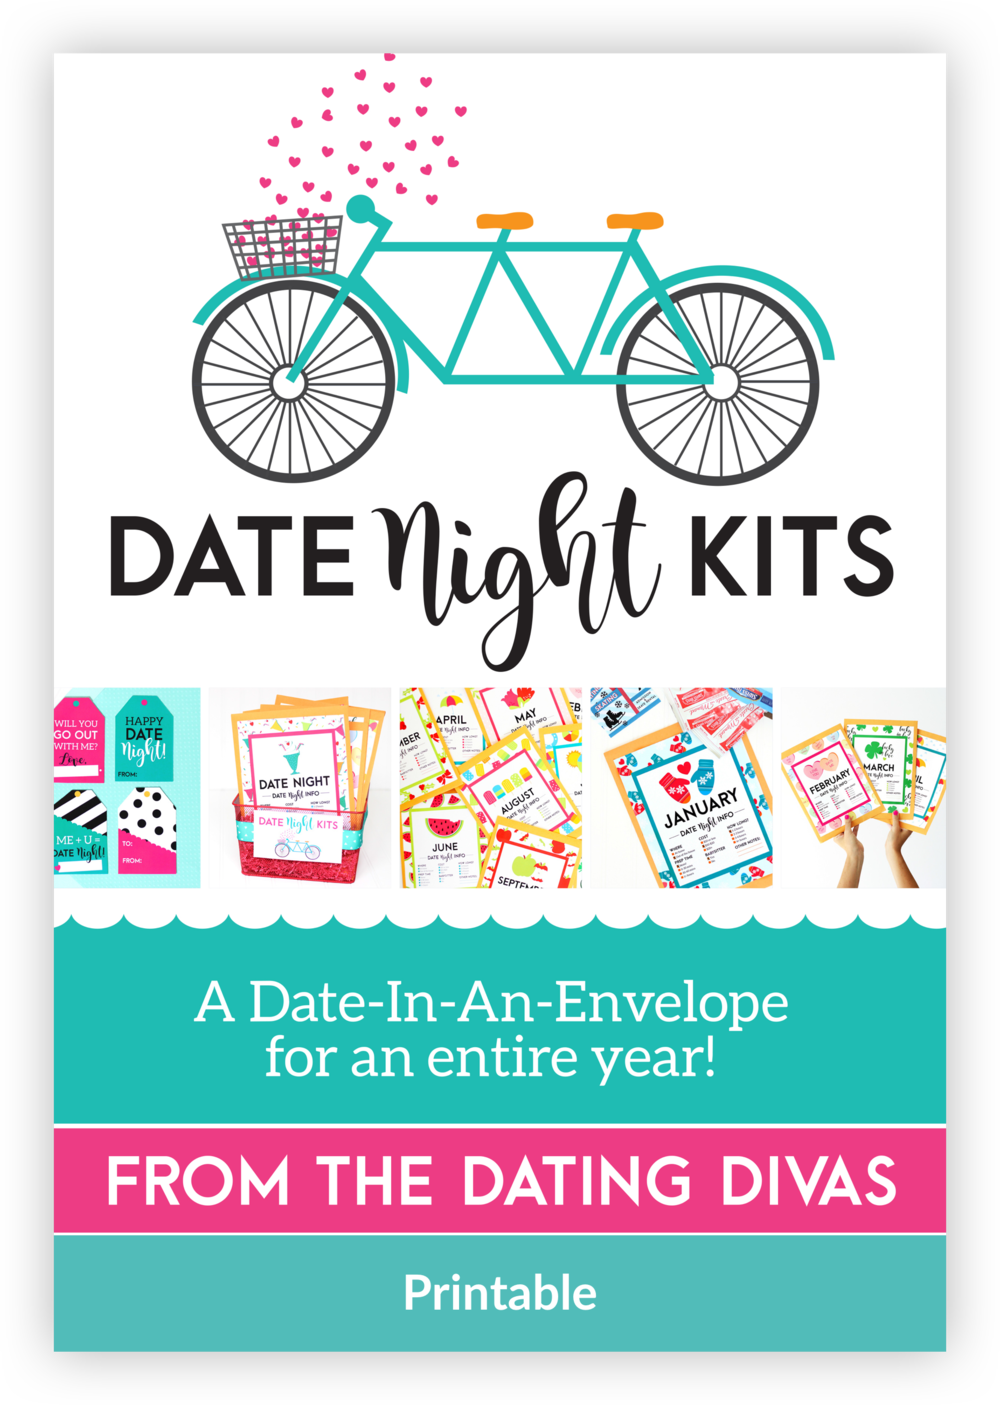 DateNightKits Mockup - Copy.png